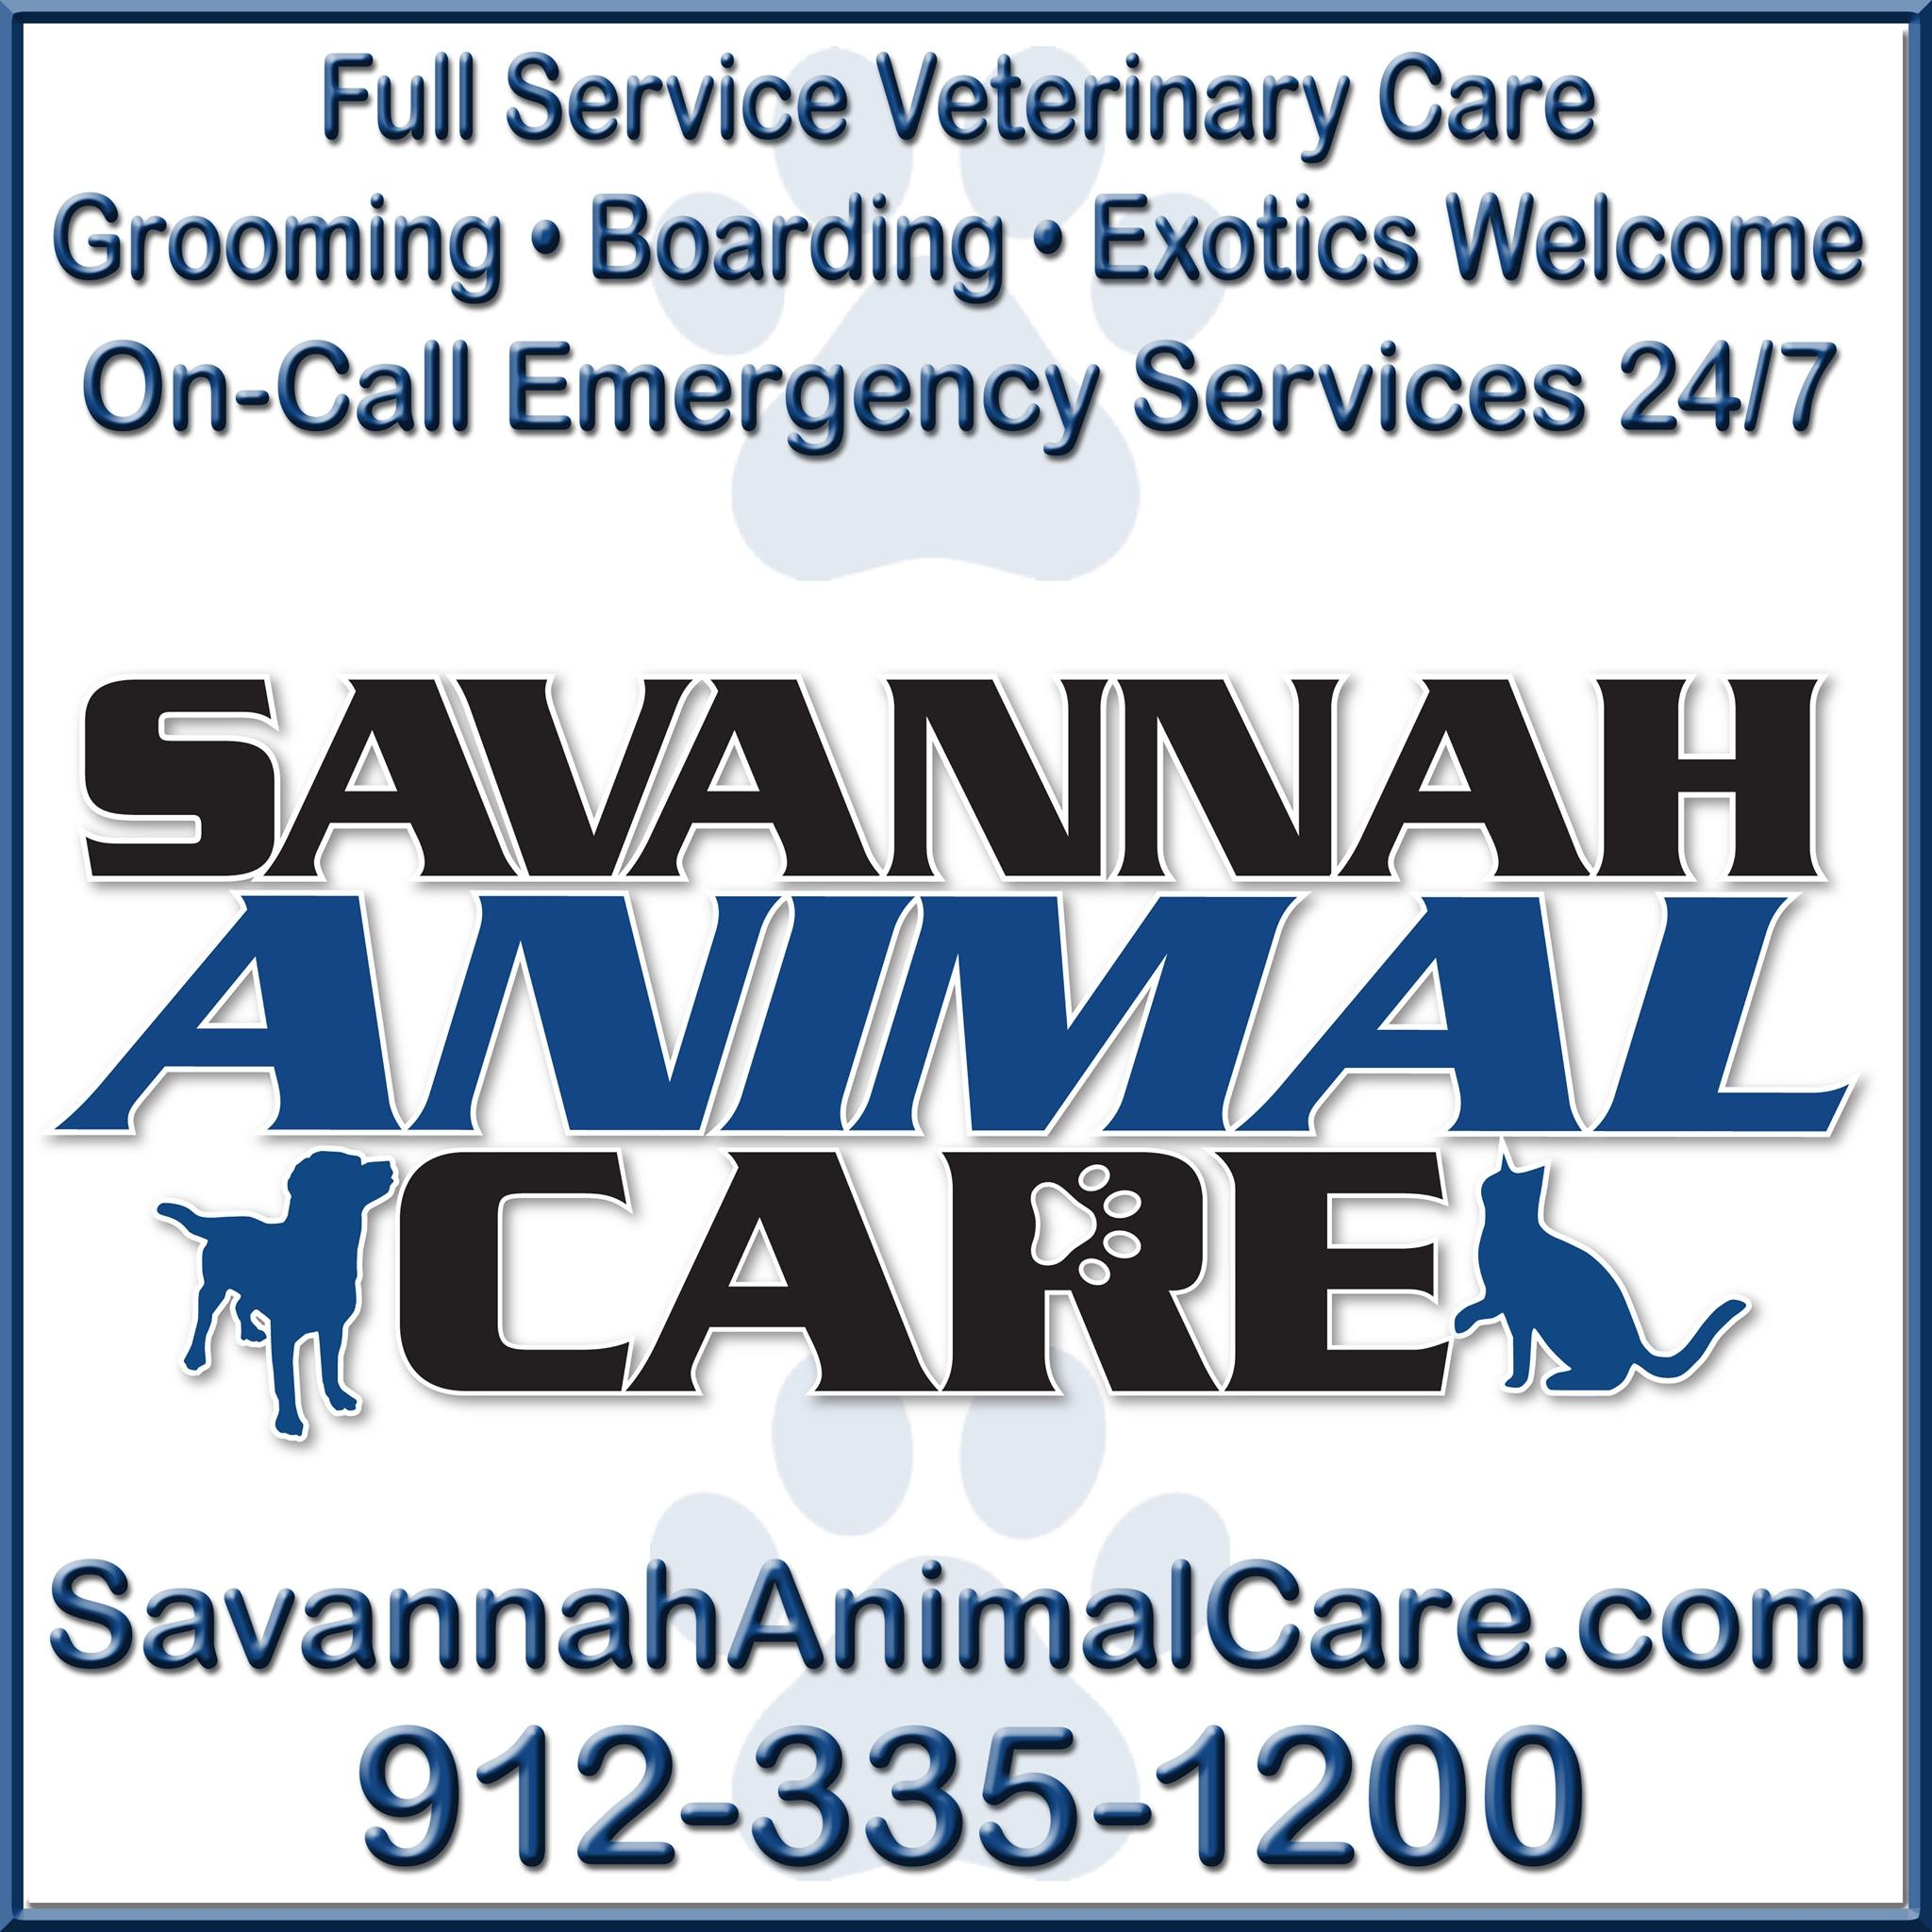 Savannah Animal Care